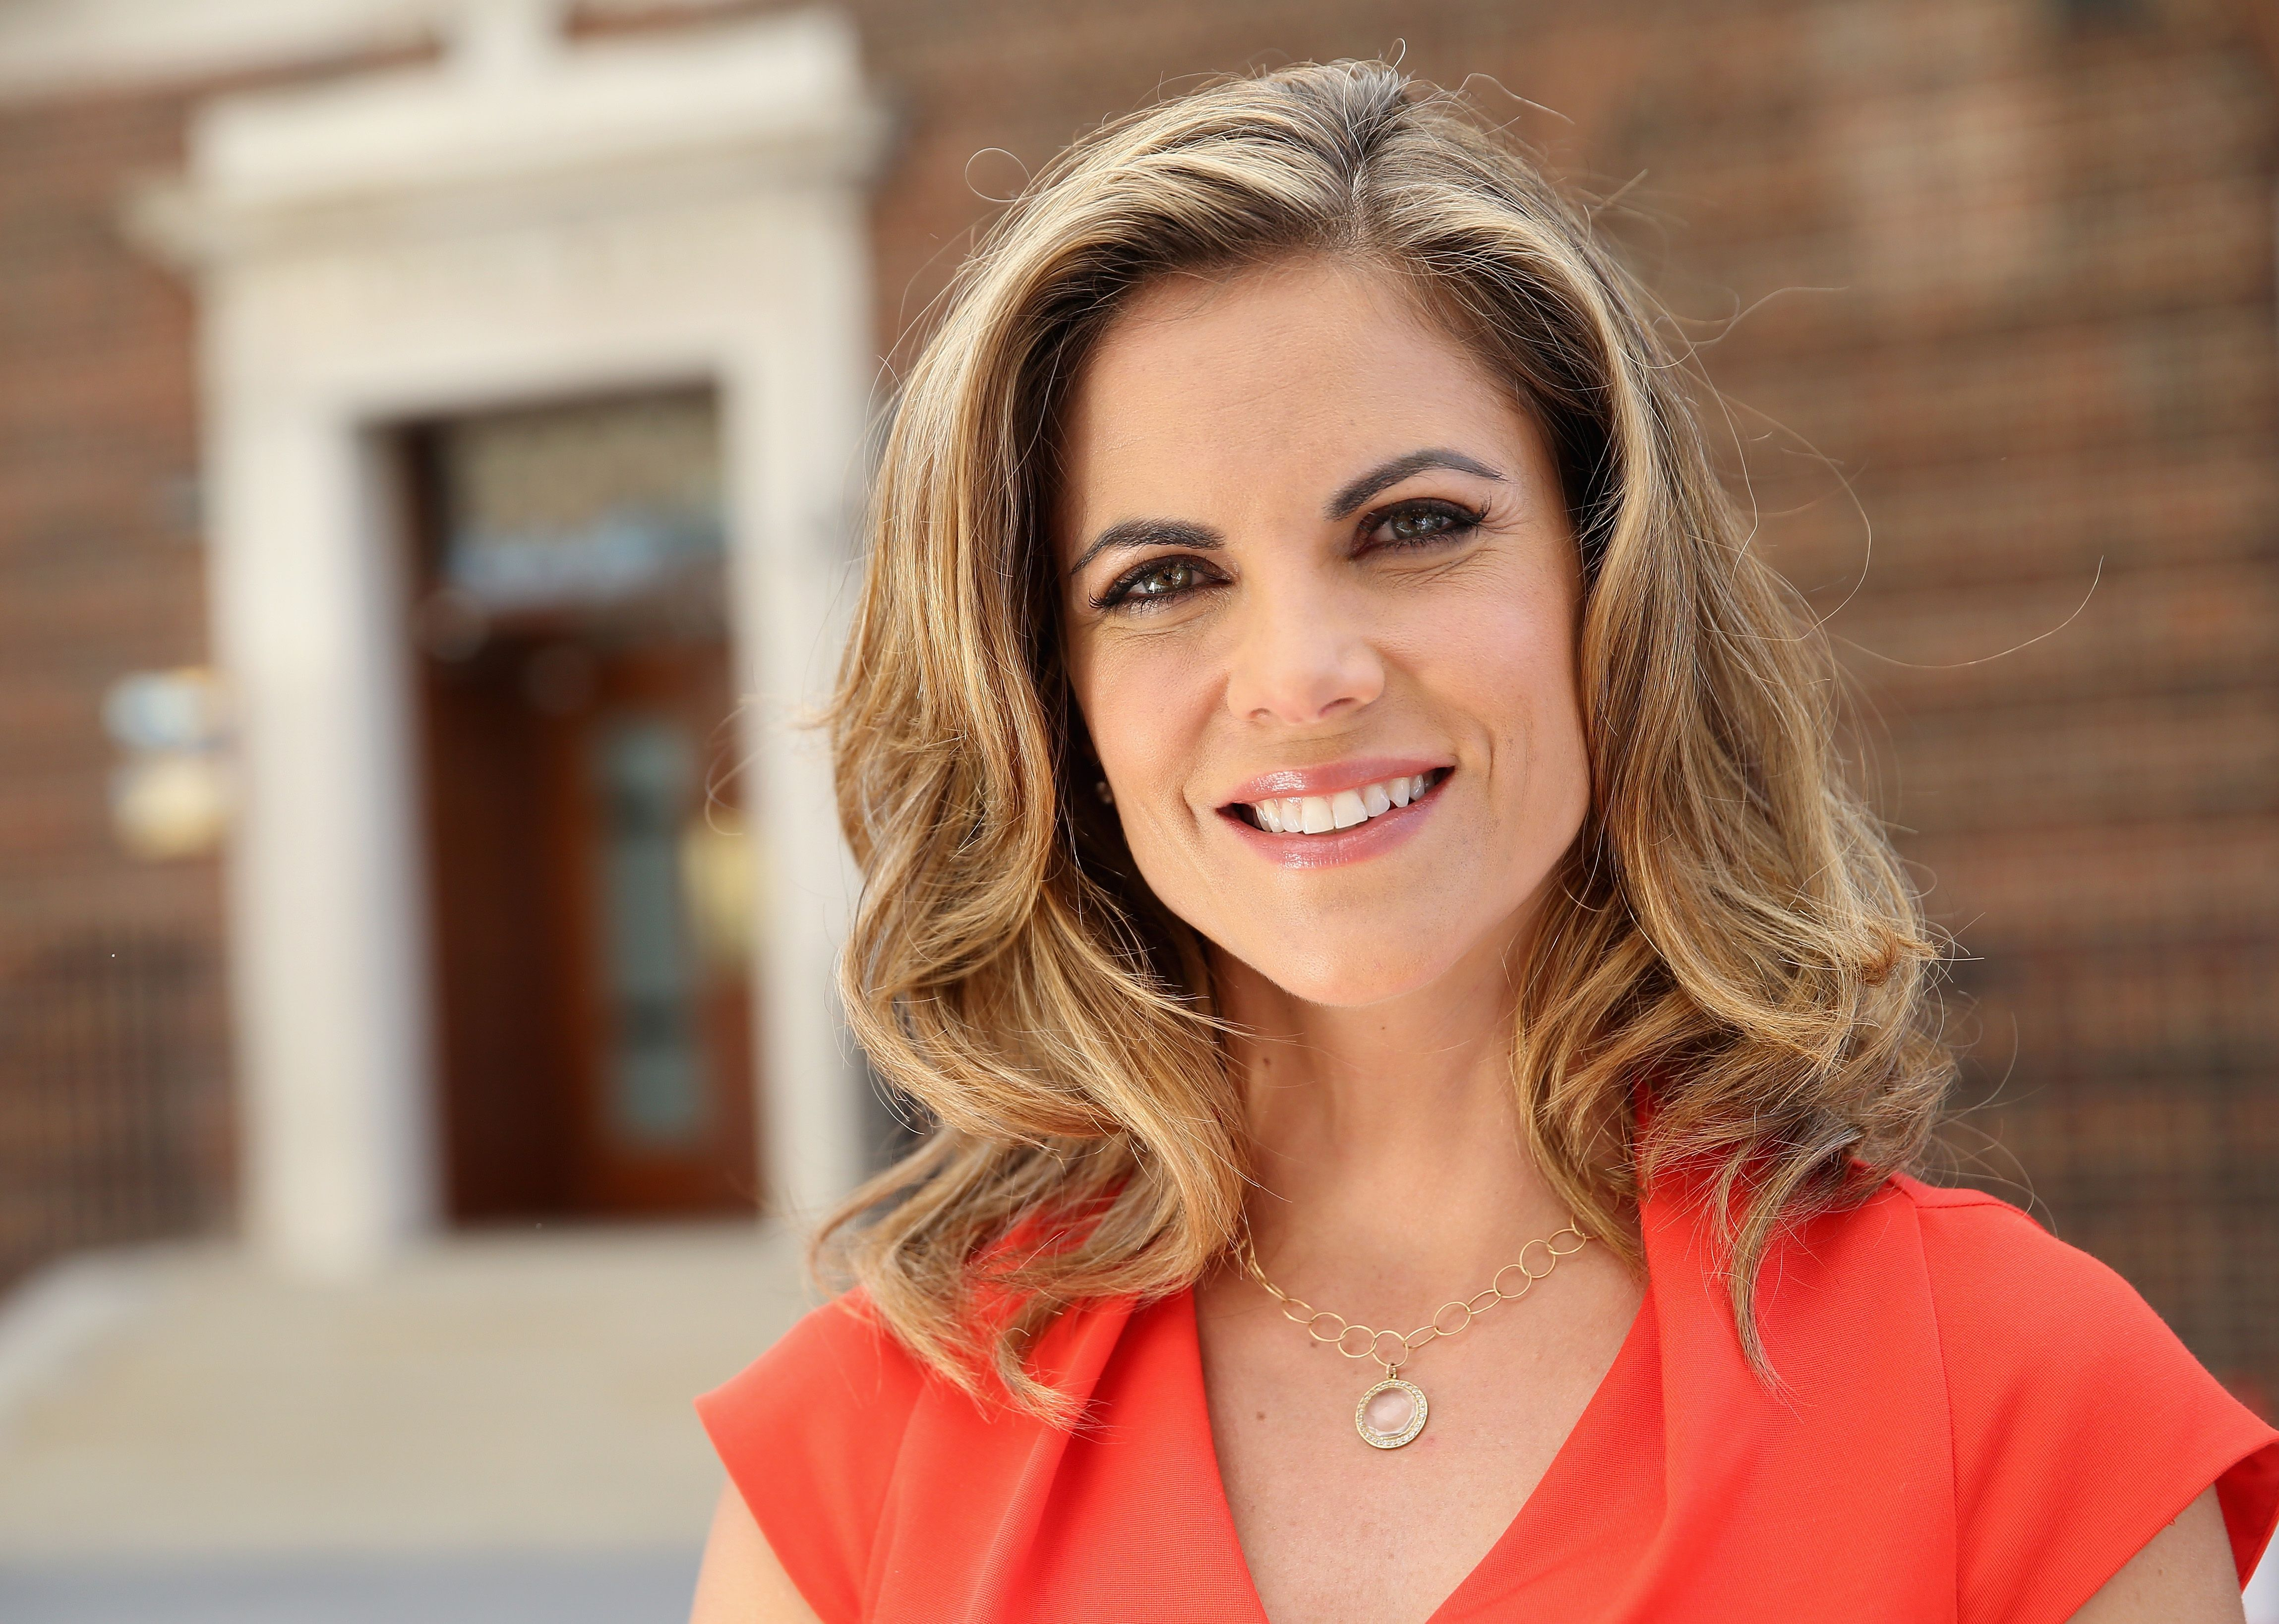 Did Natalie Morales Get Fired From 'Access Live'? - Is Natalie